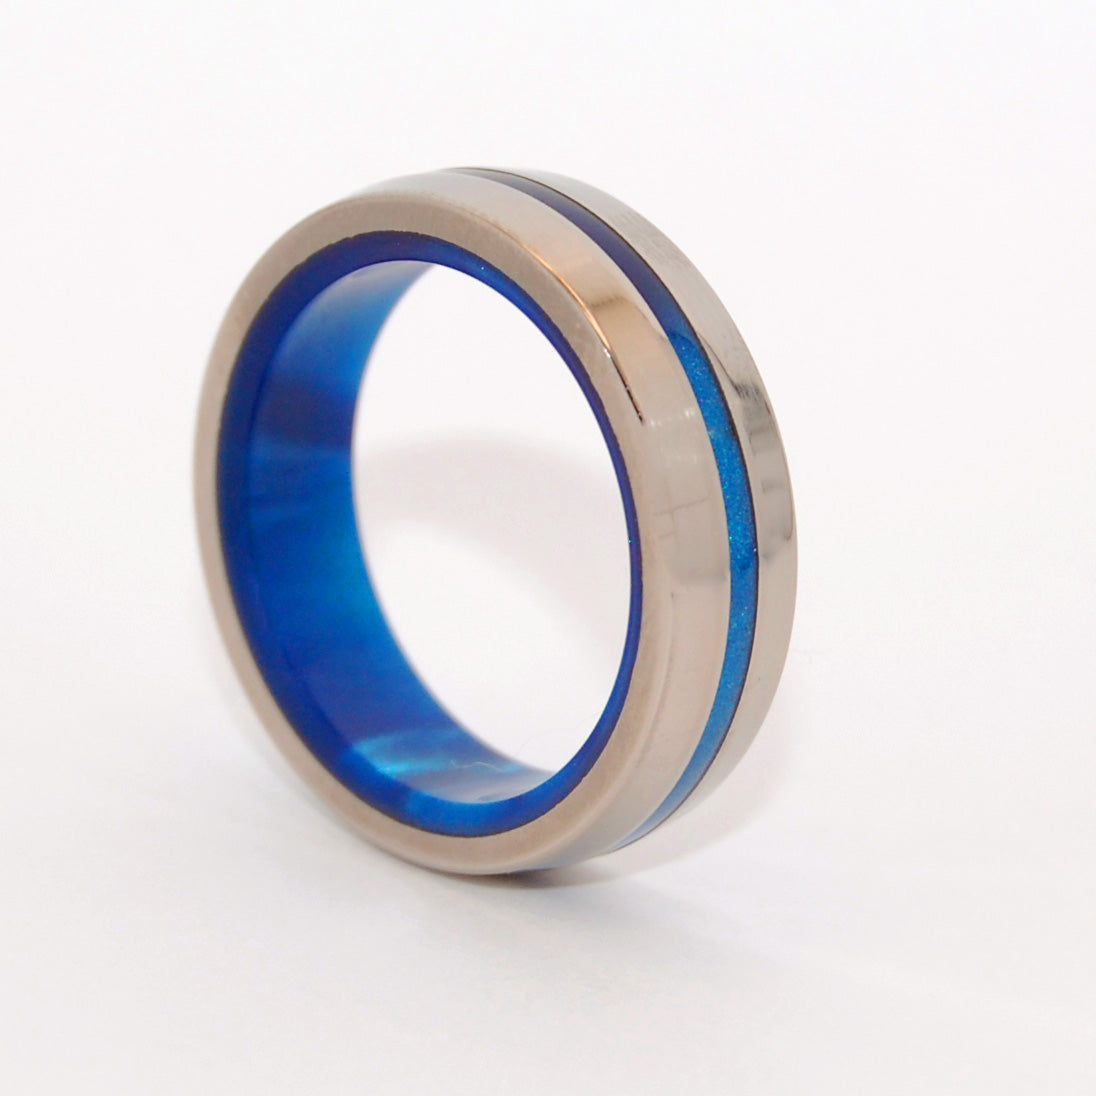 Men's Titanium Wedding Ring - Unique Wedding Rings | DOUBLY INSPIRED BY BLUE